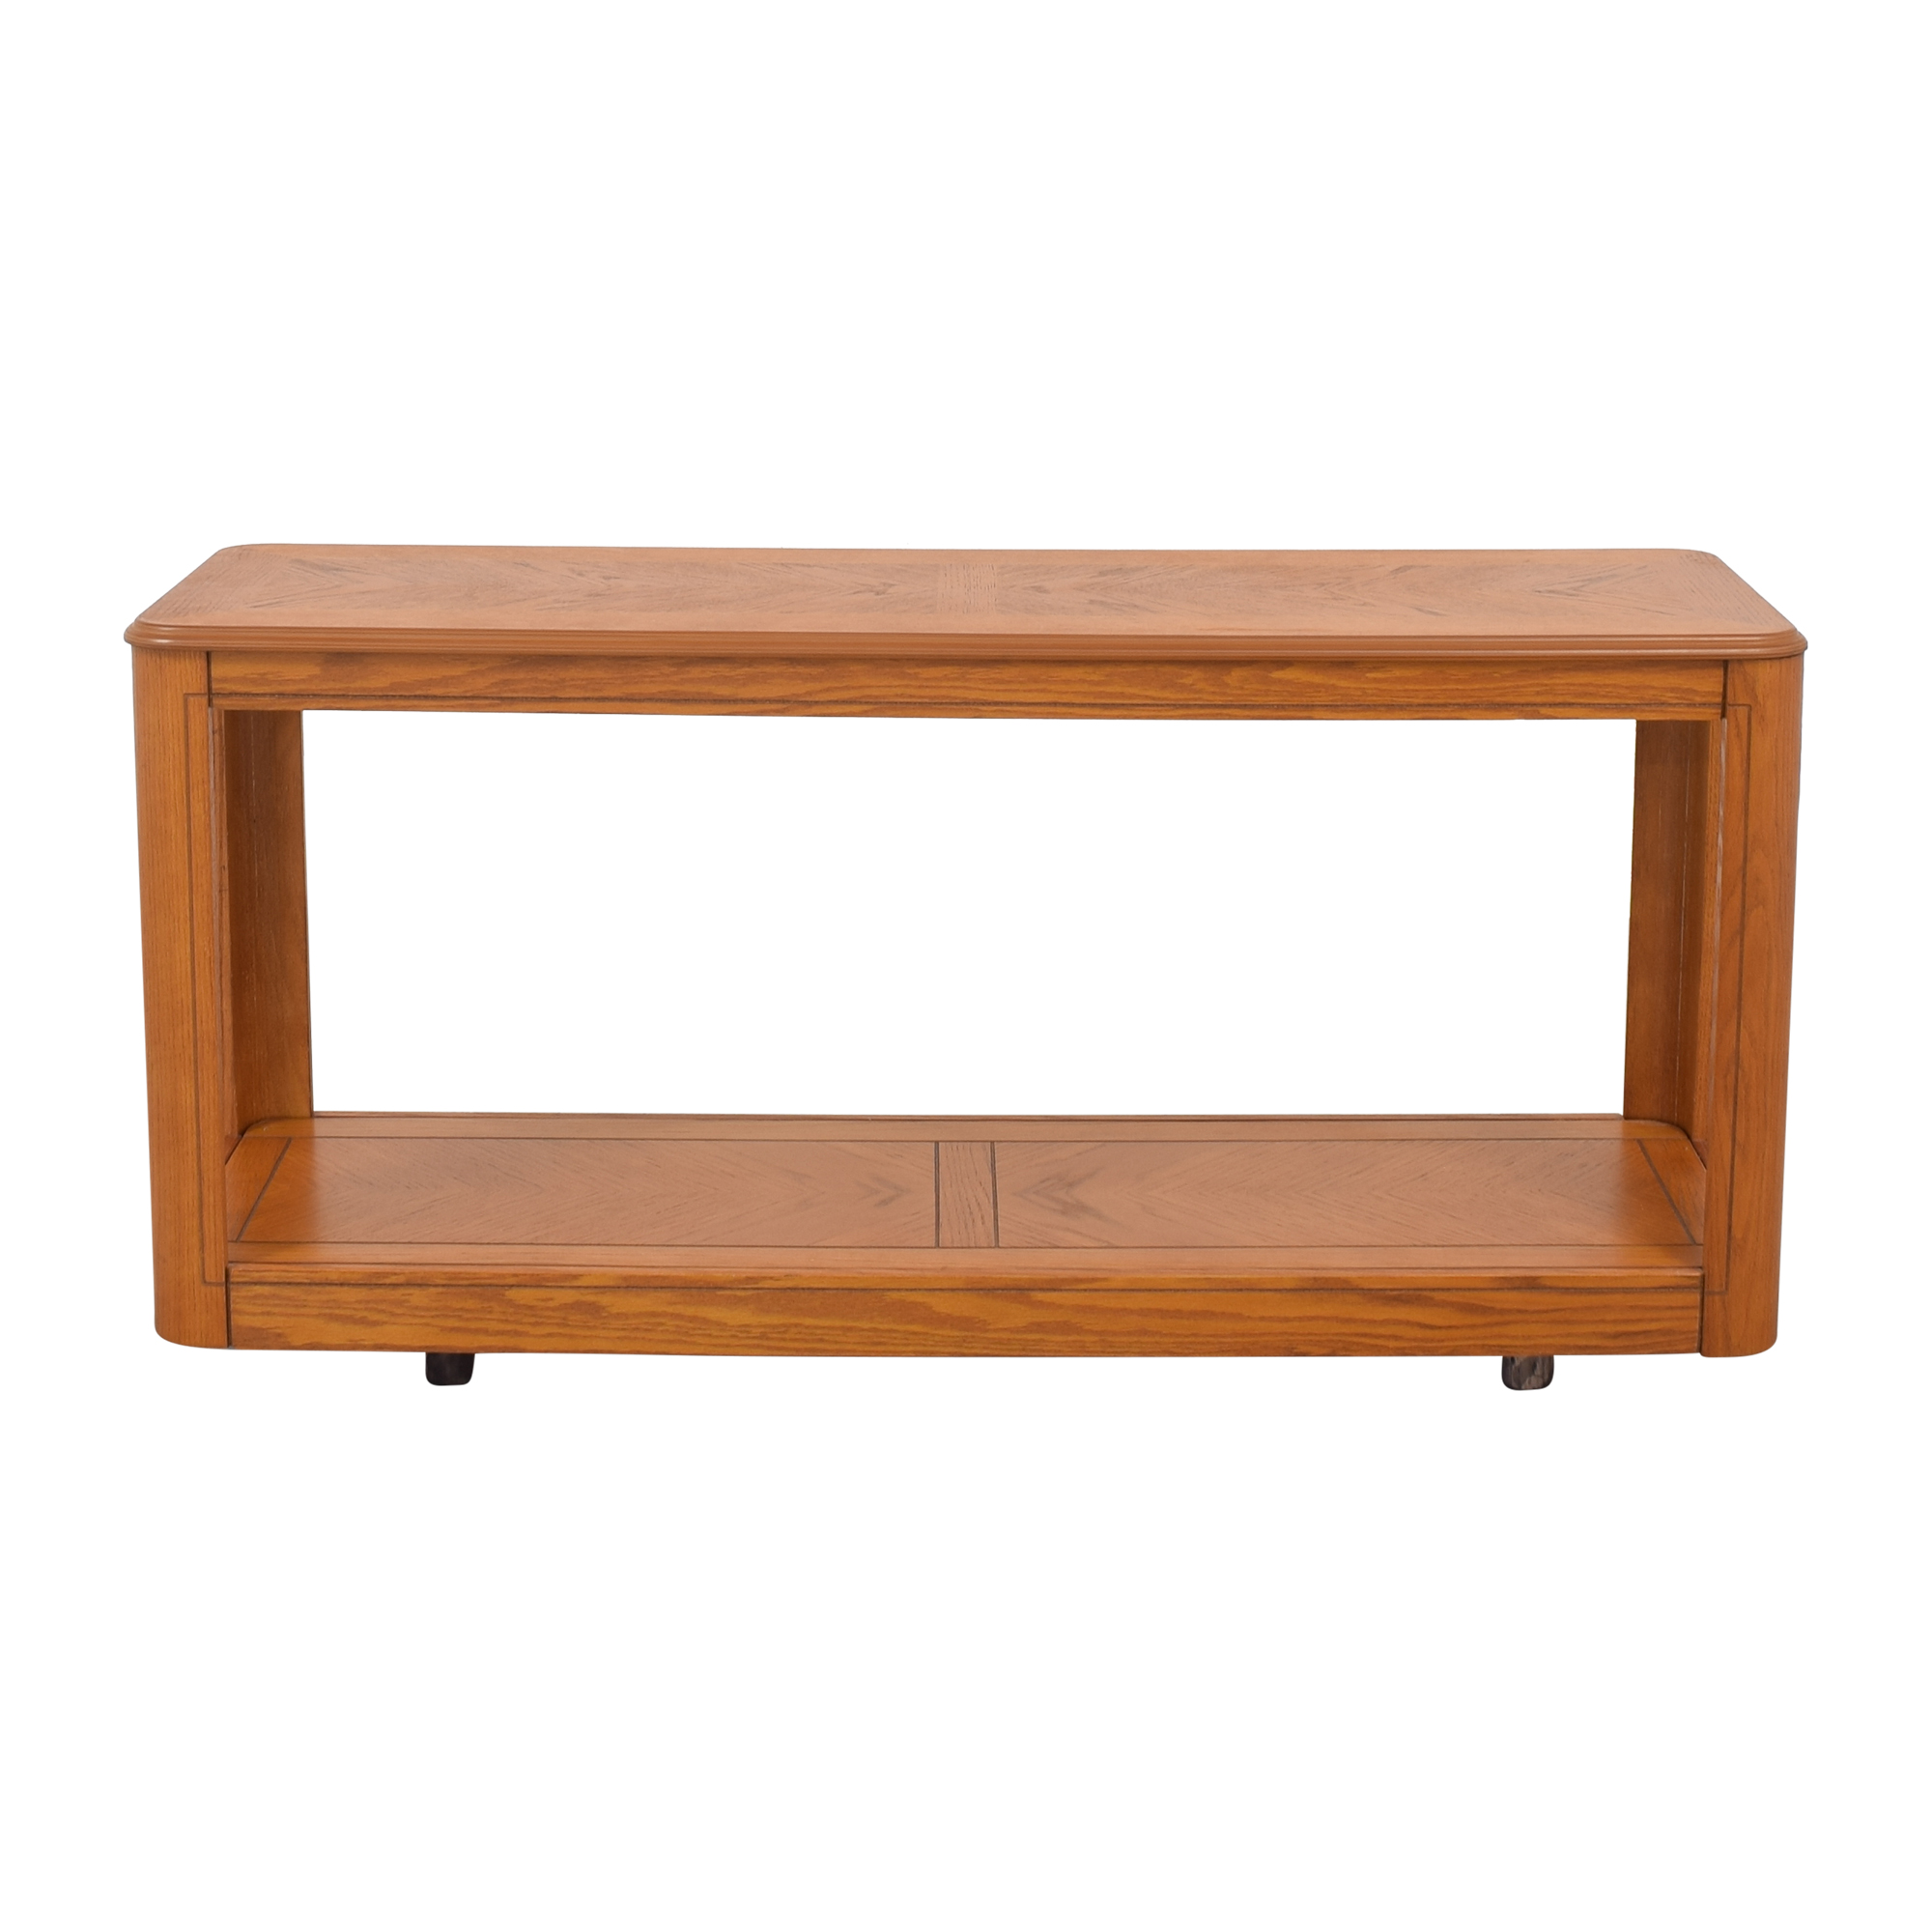 Oak Sofa Table price